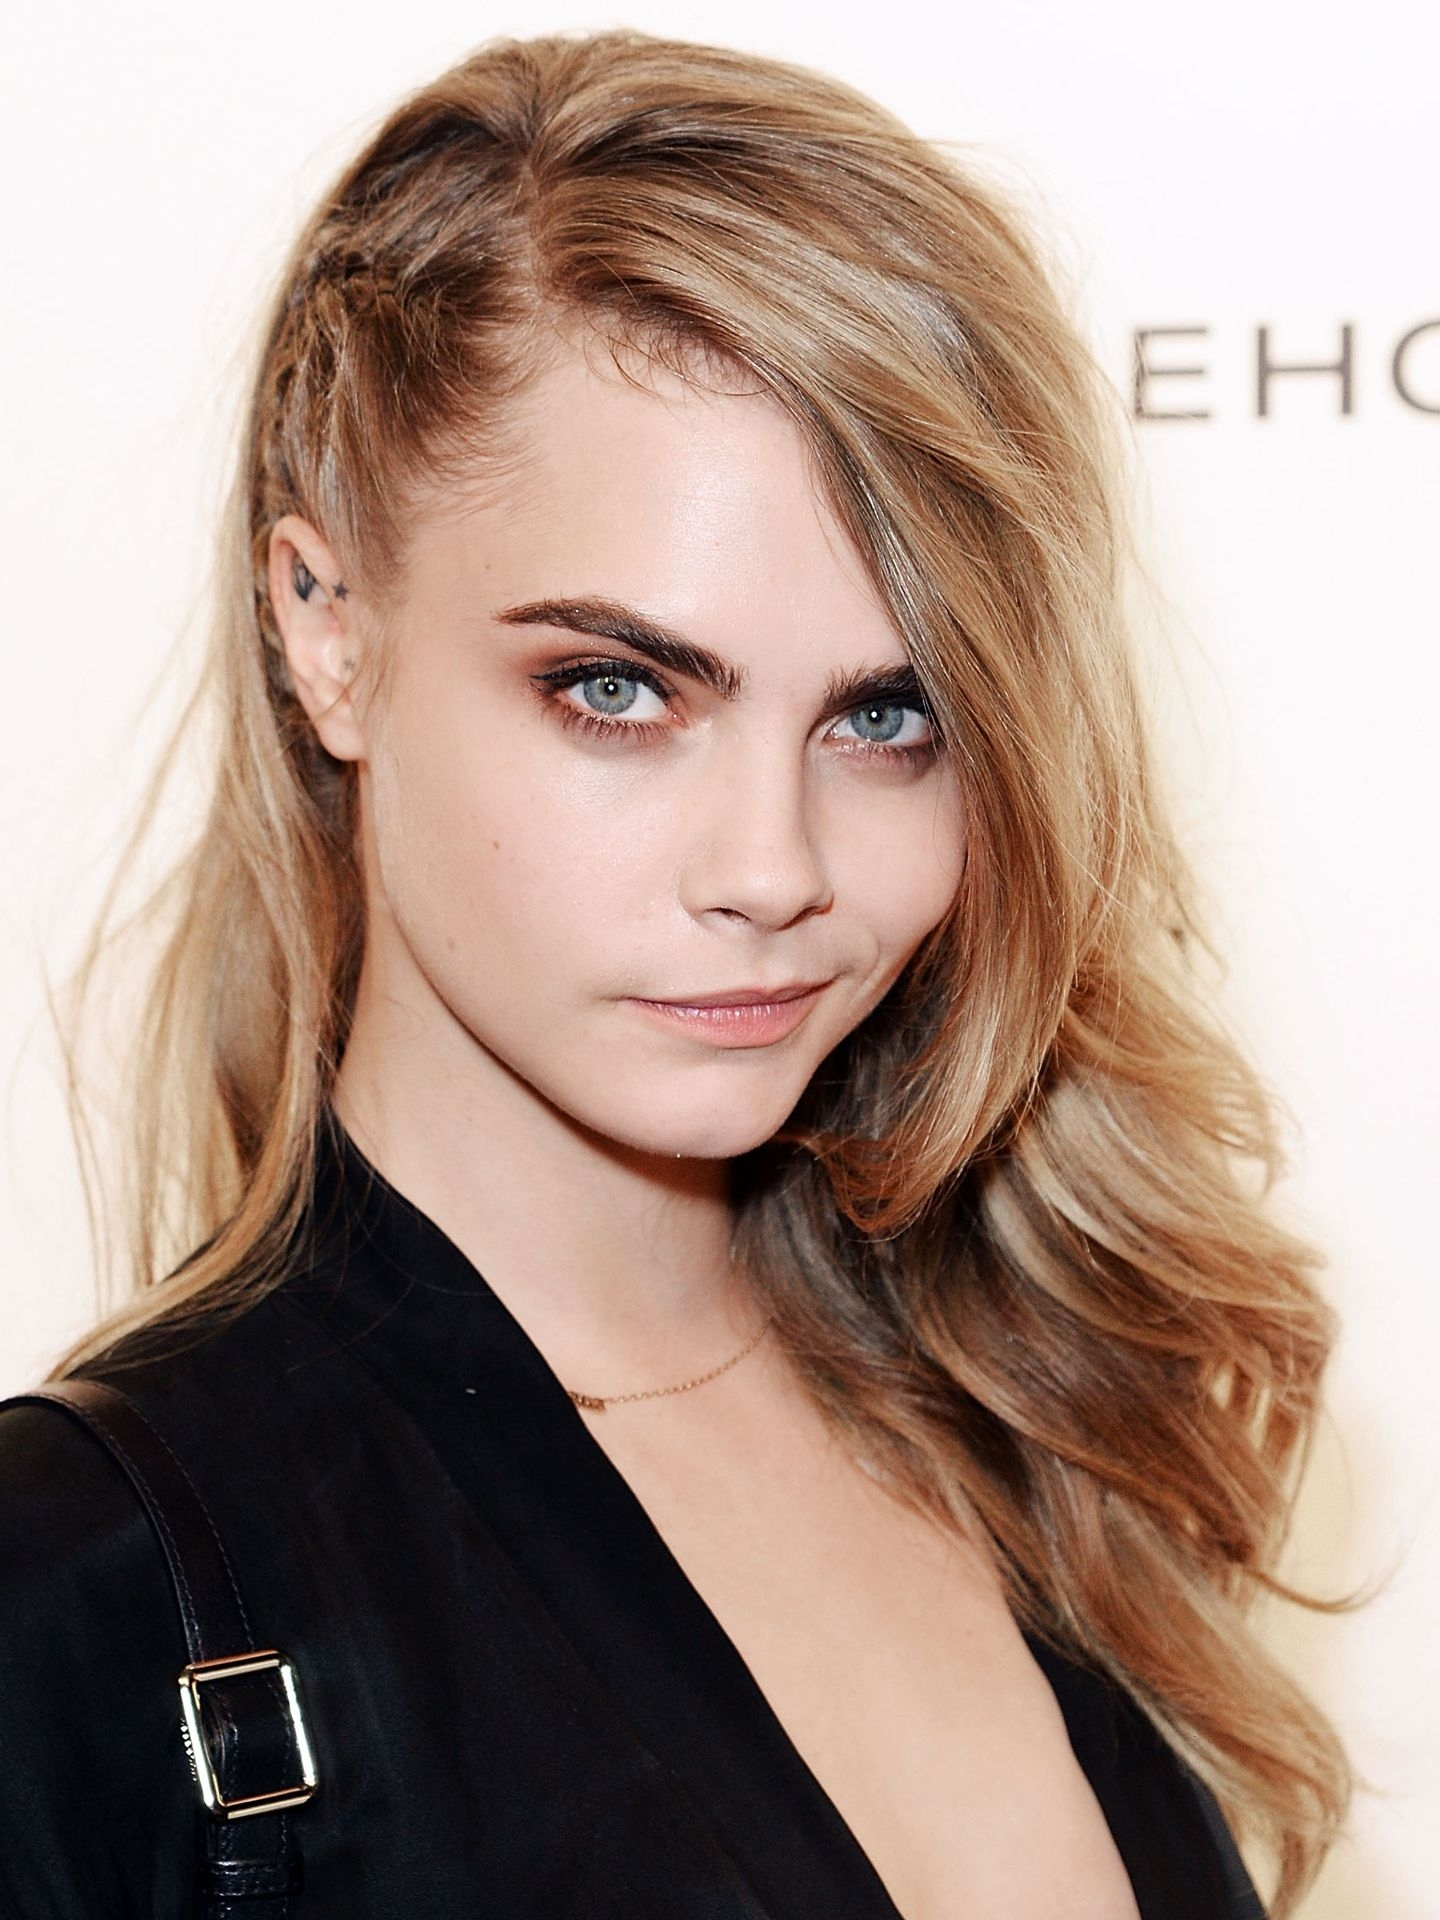 11 Side Swept Hairstyles - Celebrity Side Hairstyle Inspiration with One Side Hair Long